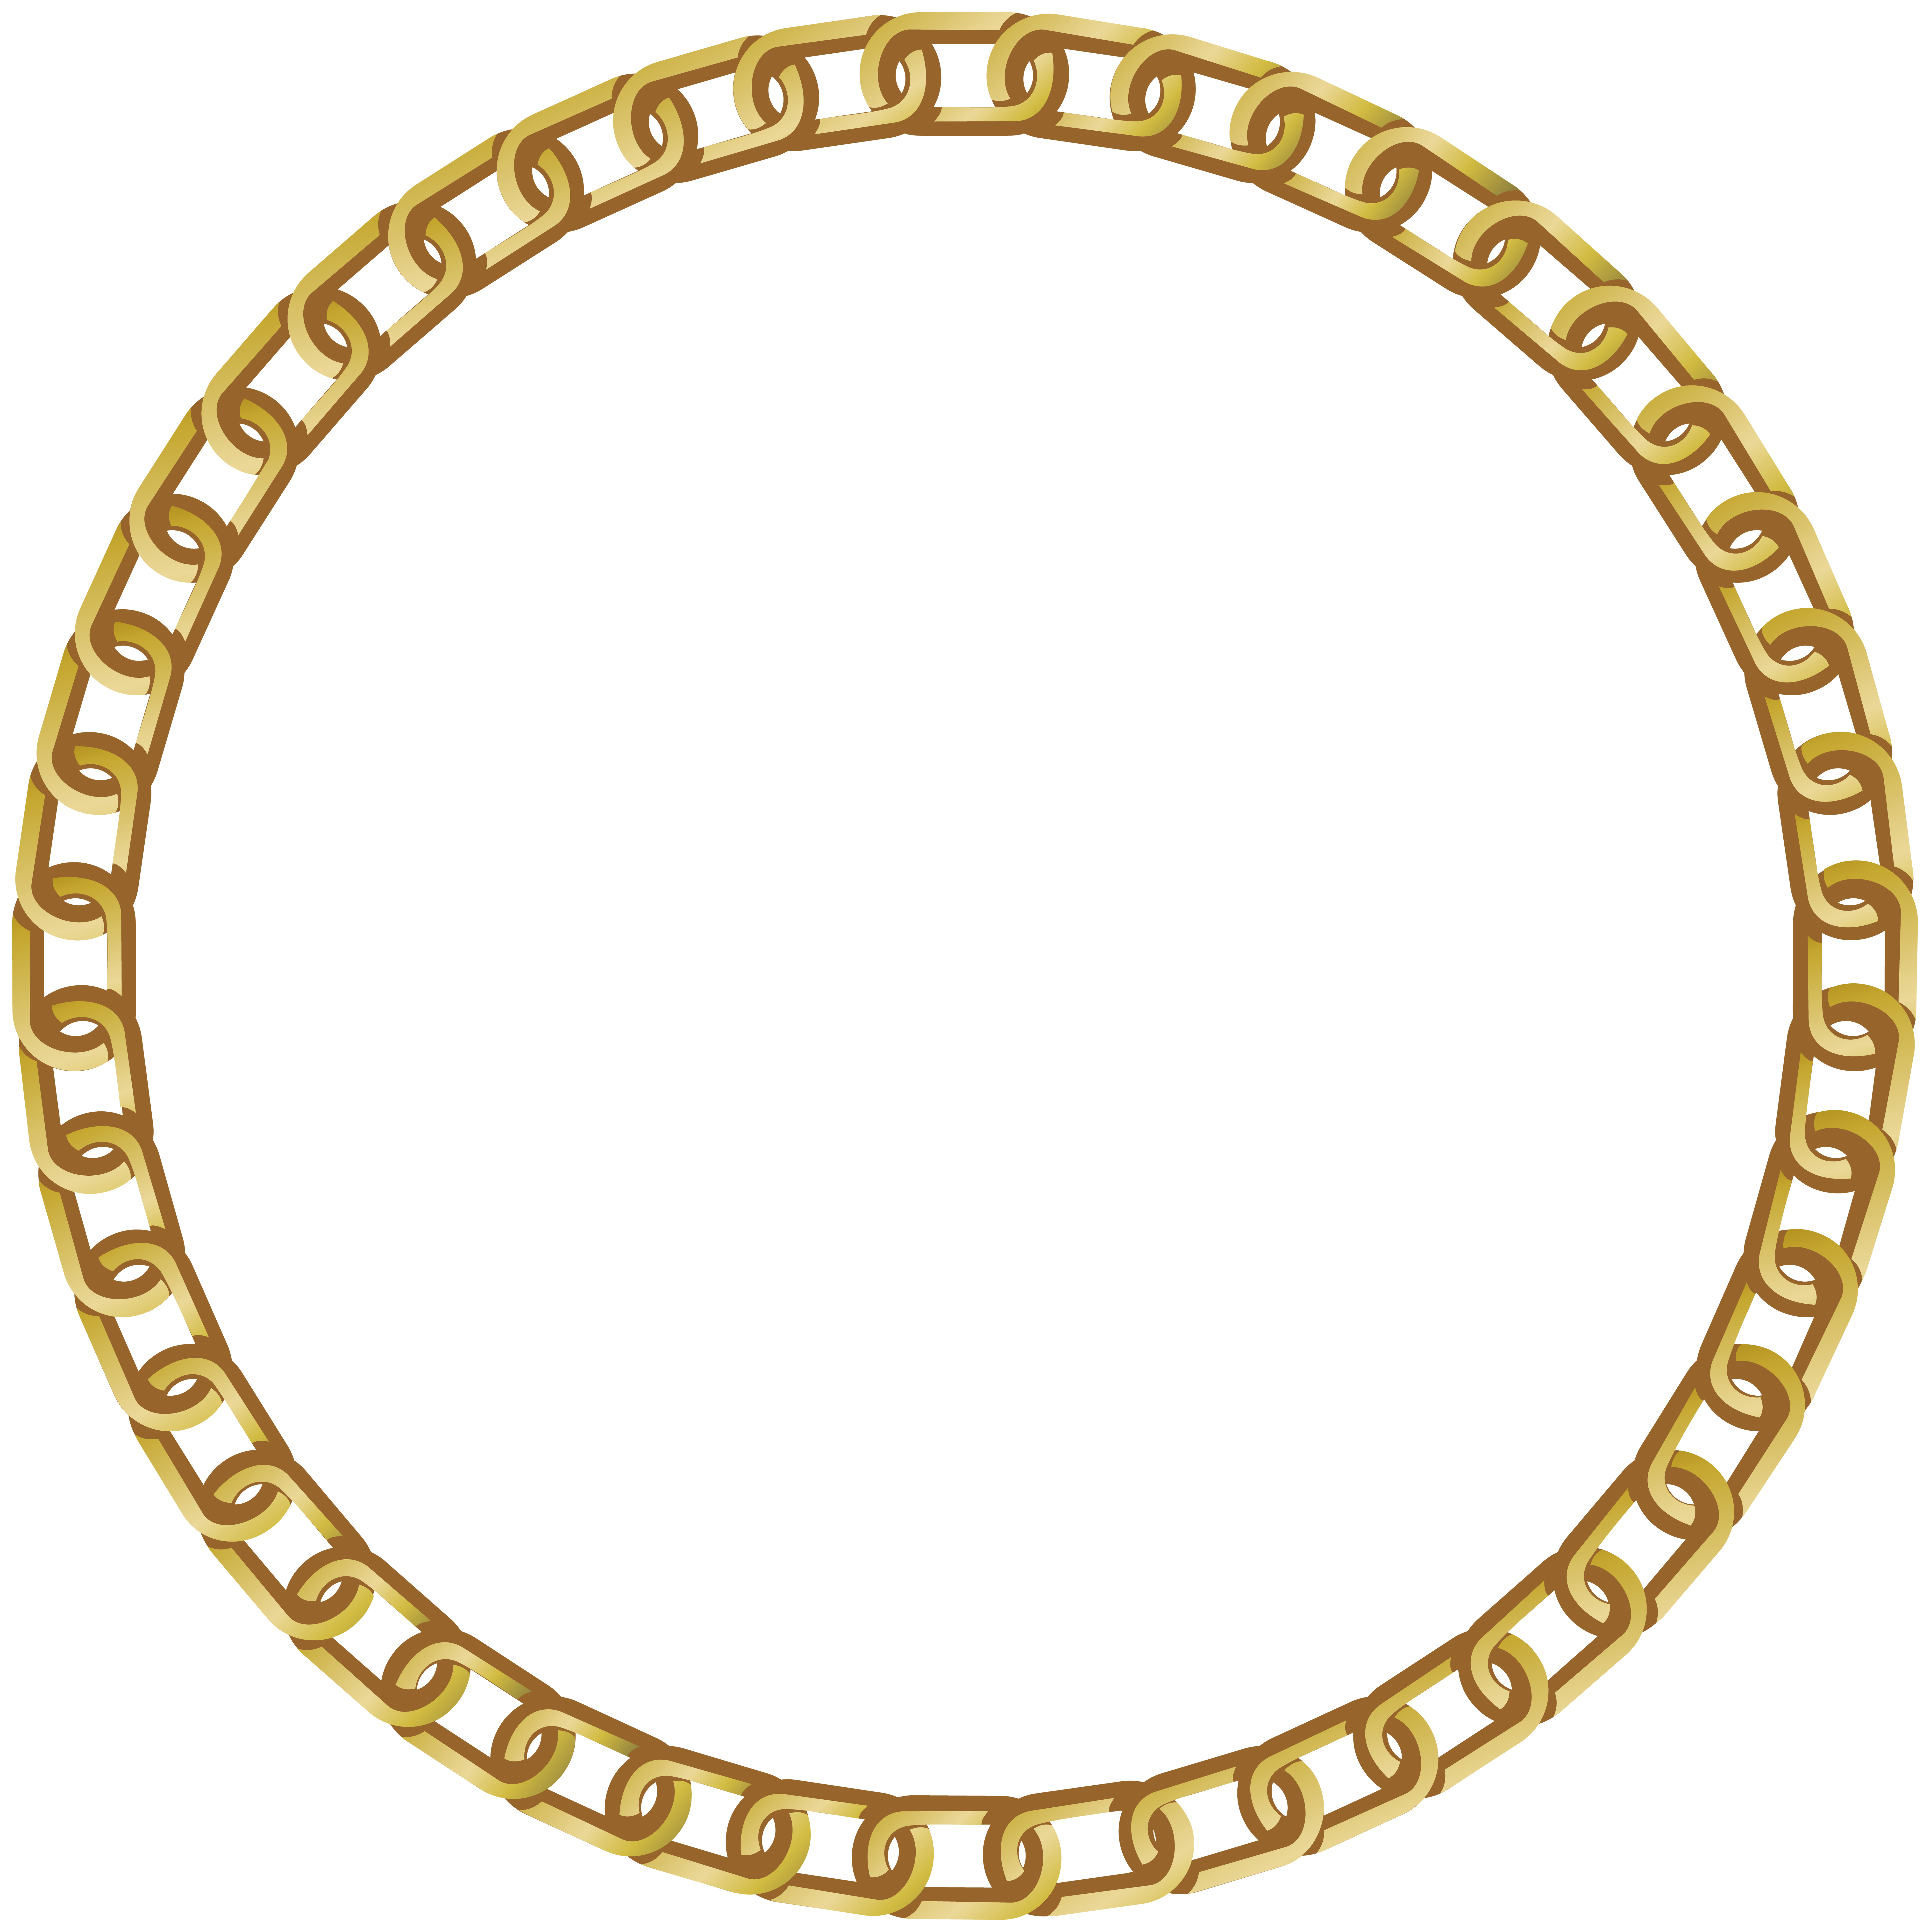 Frame circle clipart. Round gold transparent png